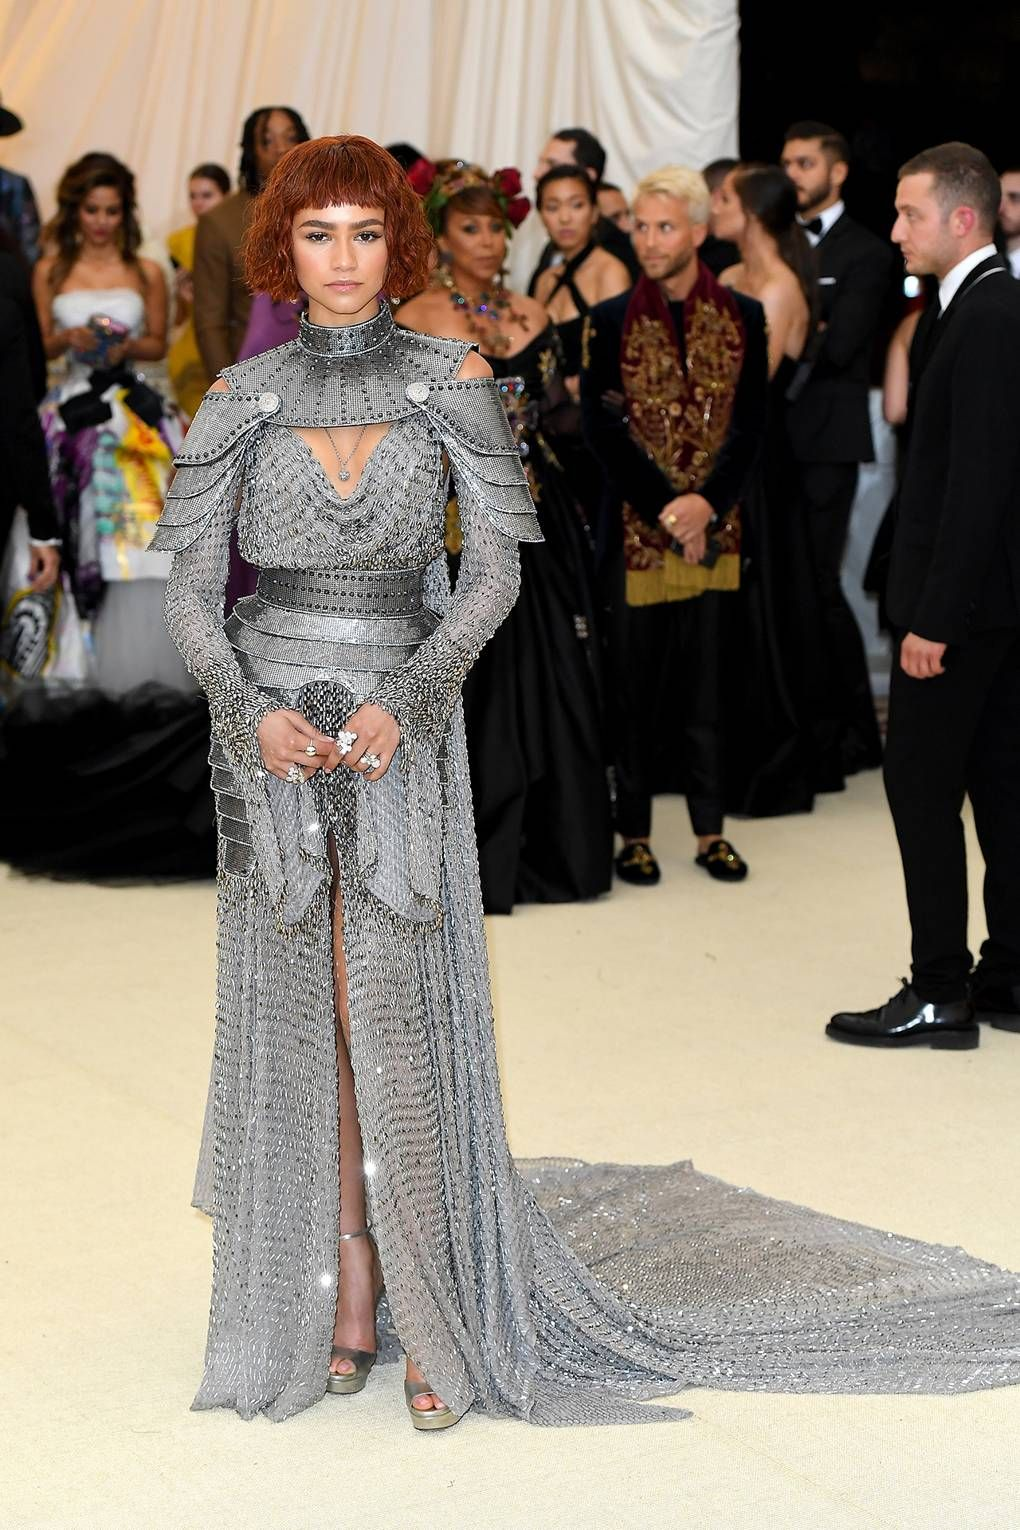 cdd3e78a1c Met Gala 2018 Dresses  All the arrivals on this year s red carpet ...